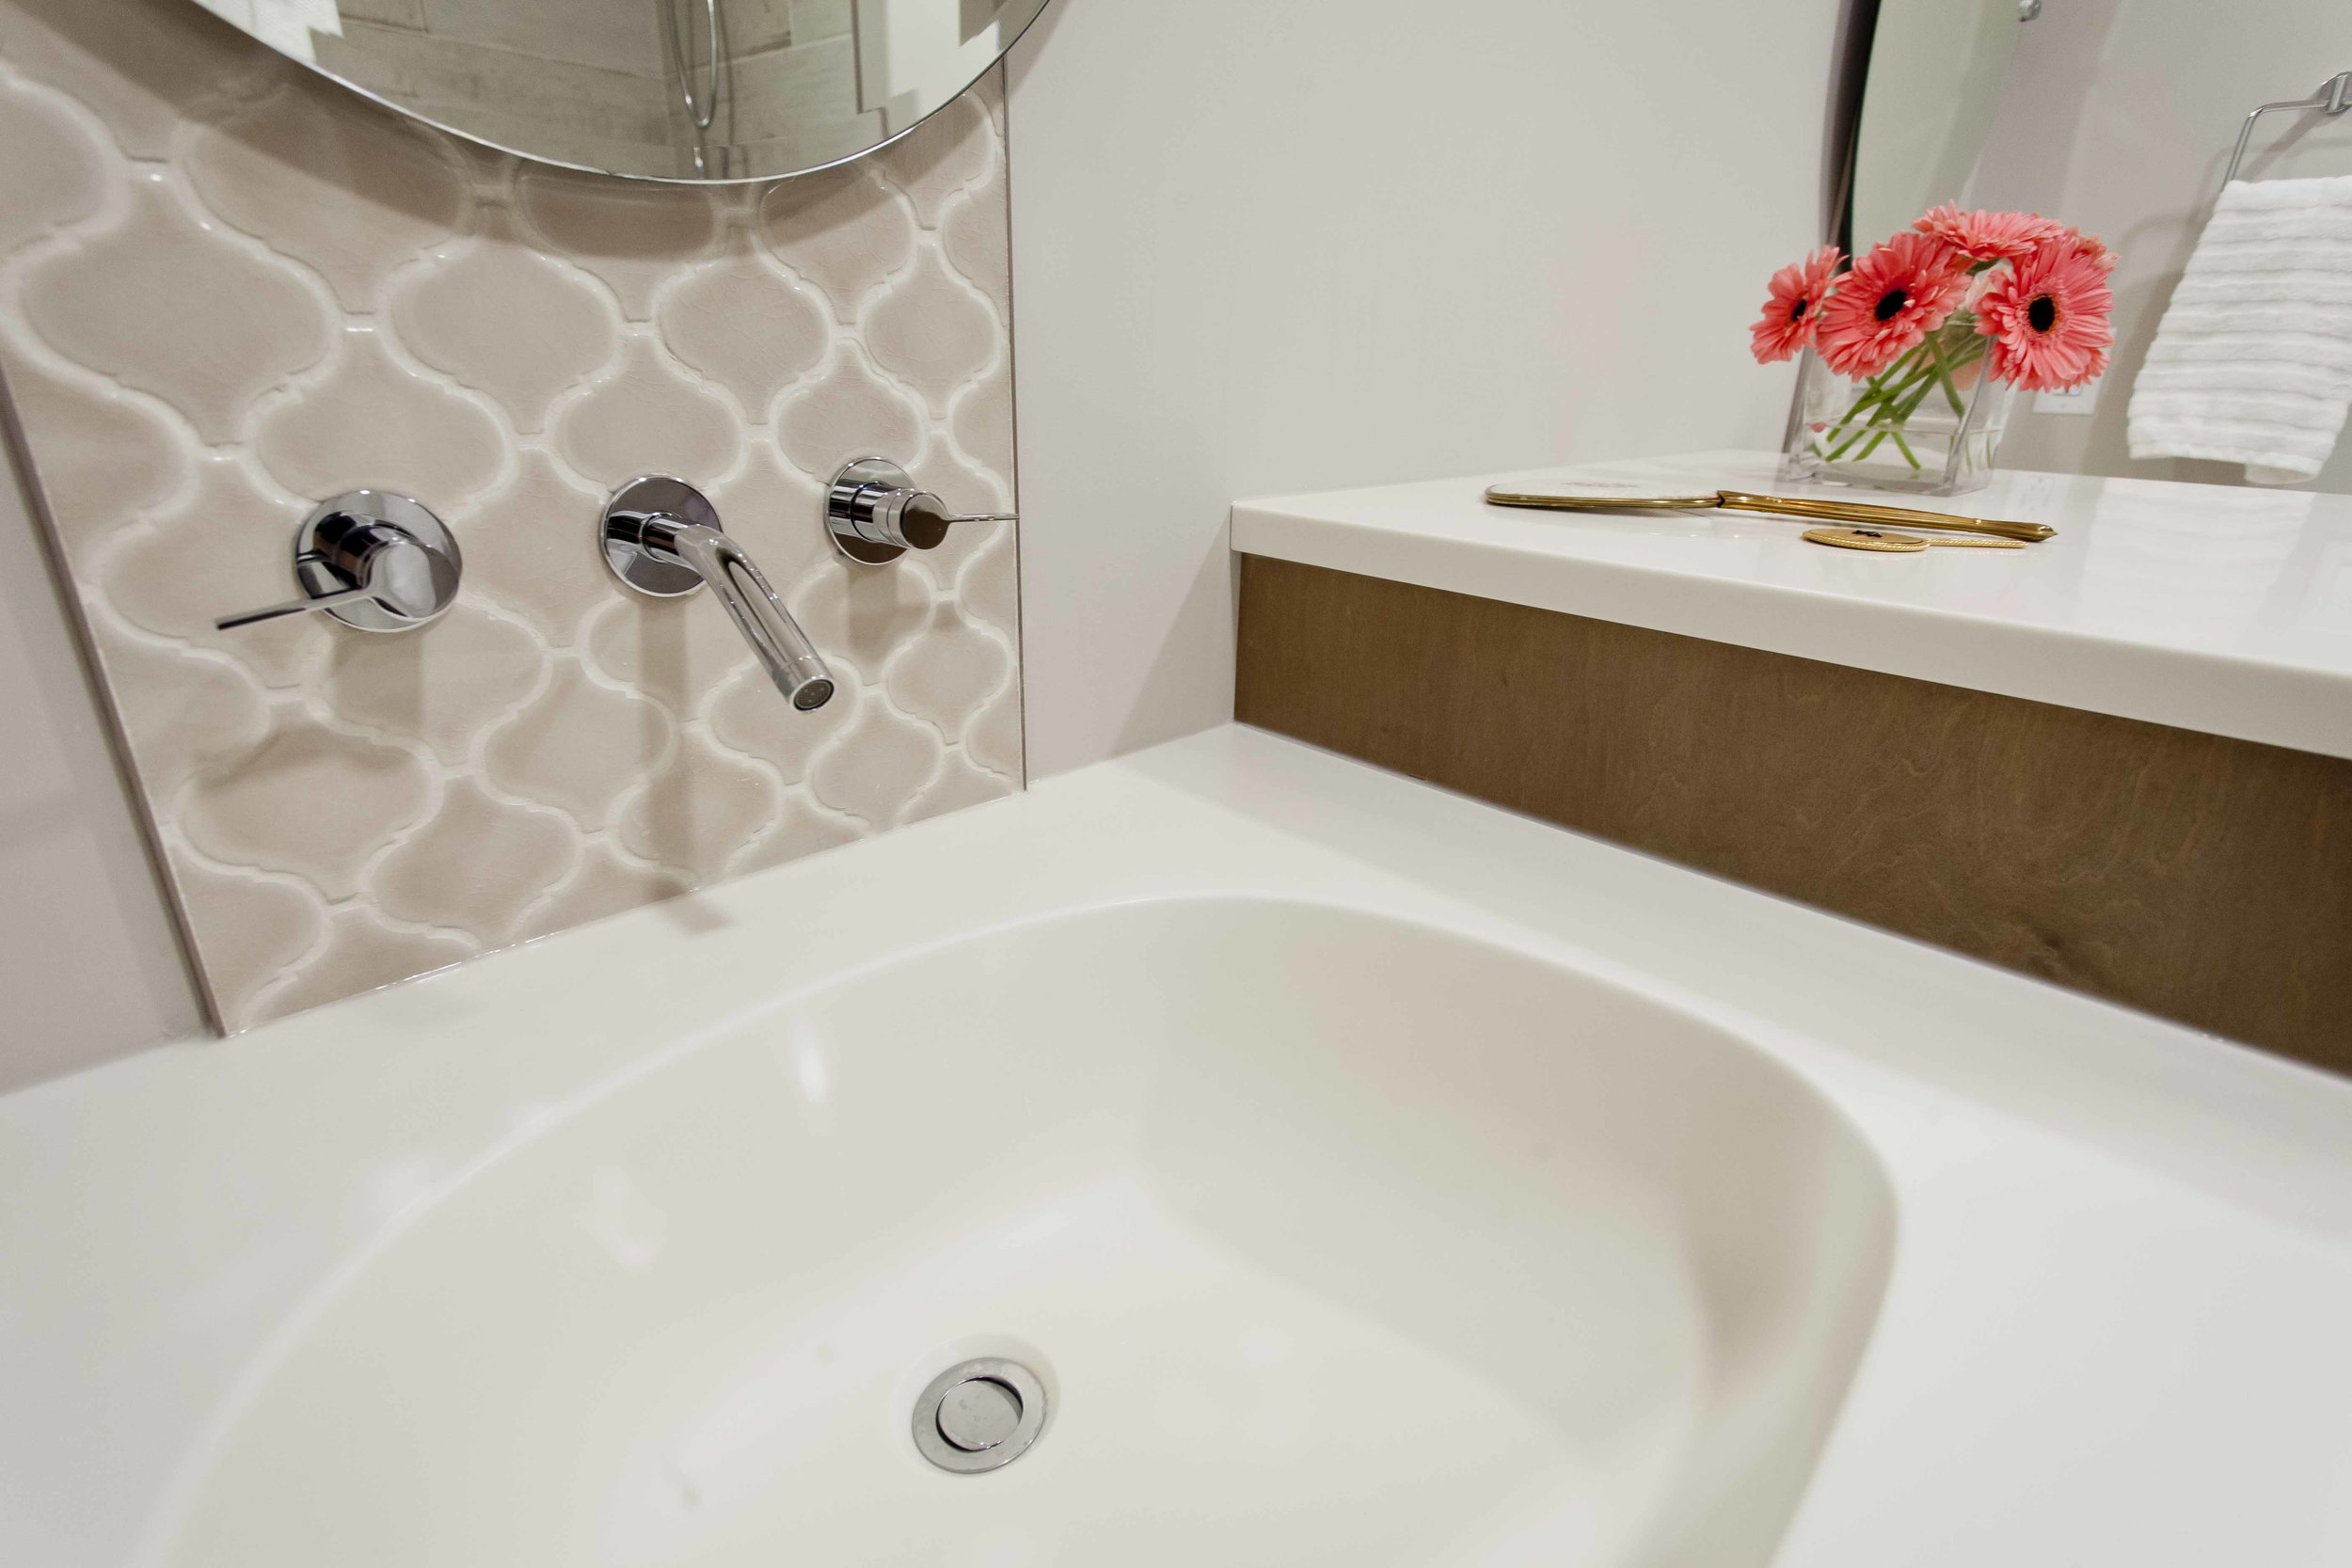 The Moroccan tile is the perfect backdrop to wall-mounted faucets.